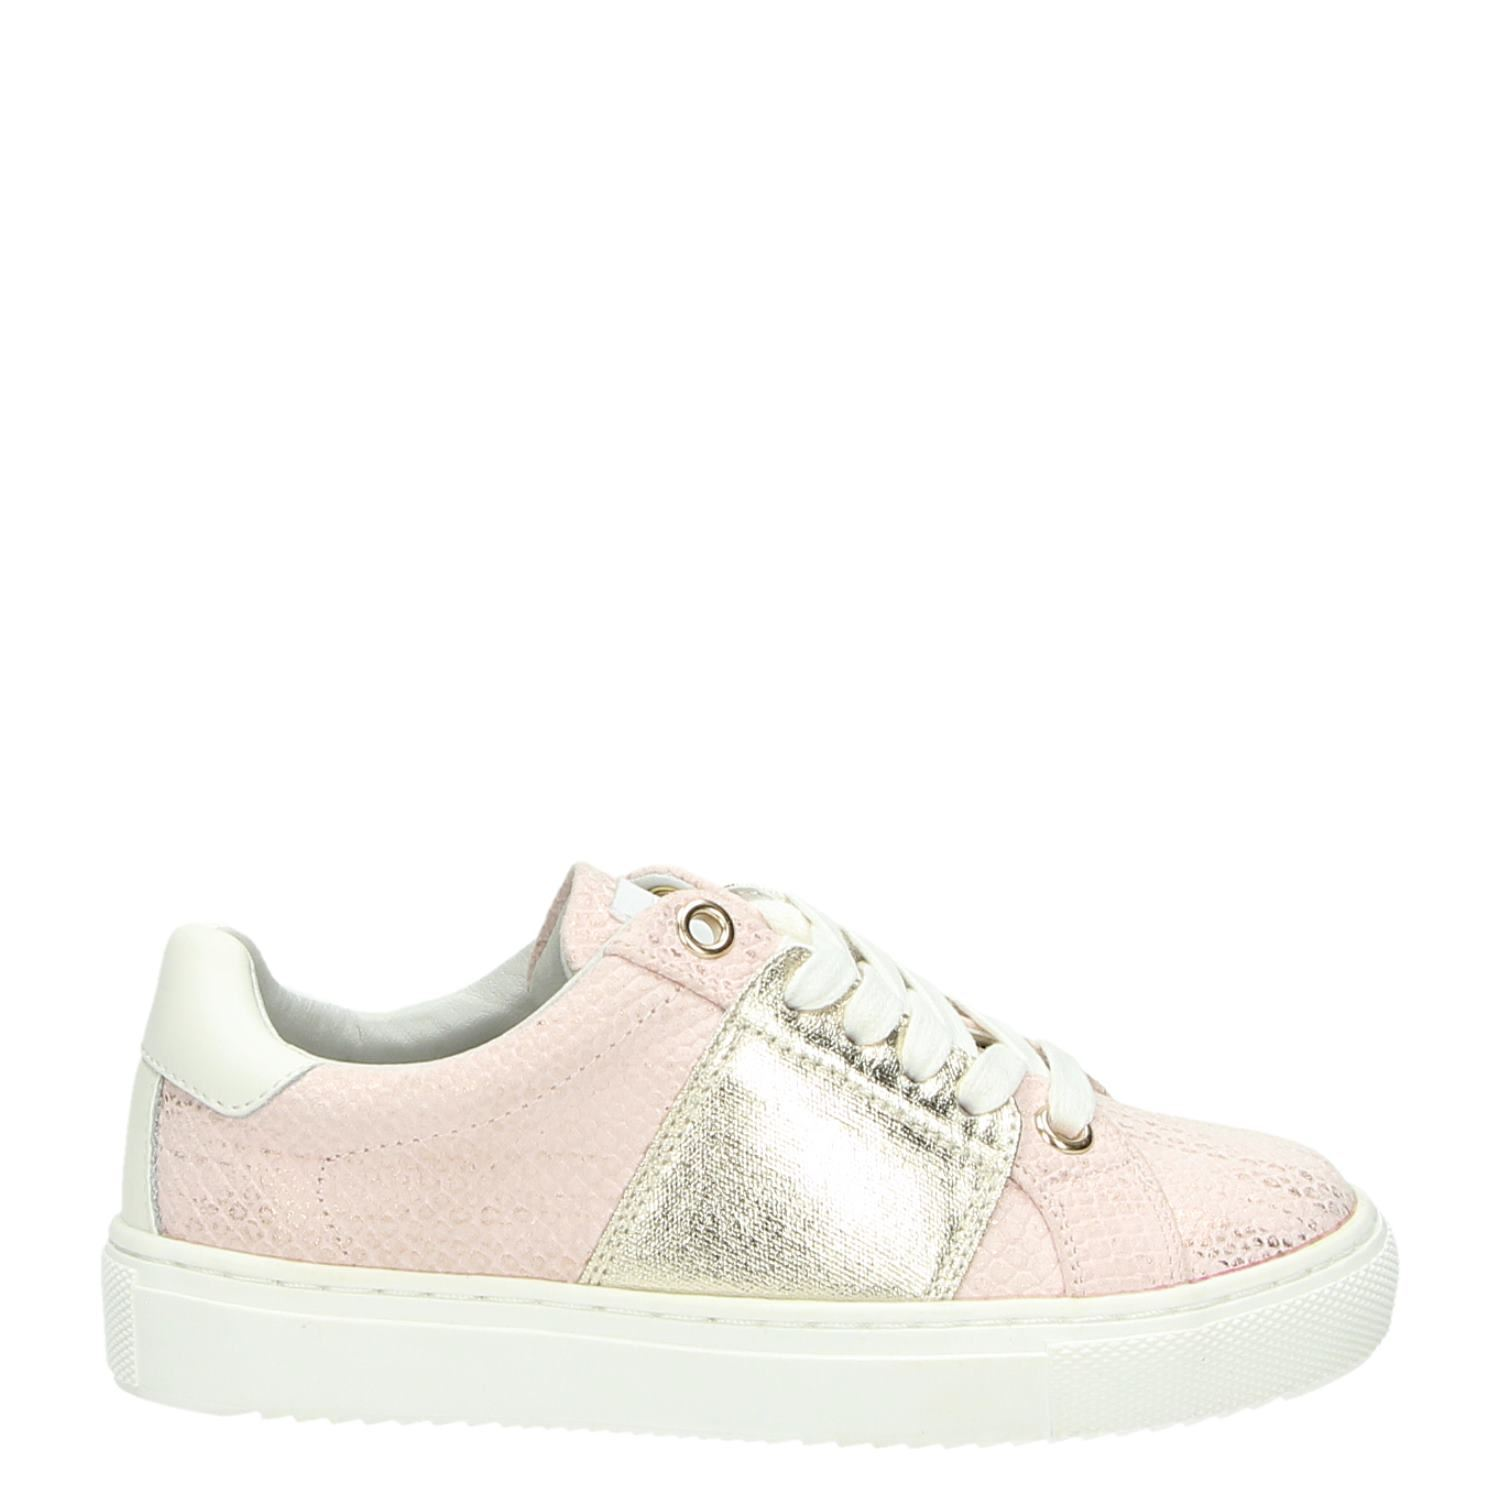 Chaussures Replay Rose Pour Les Hommes V5ZyFjoLf